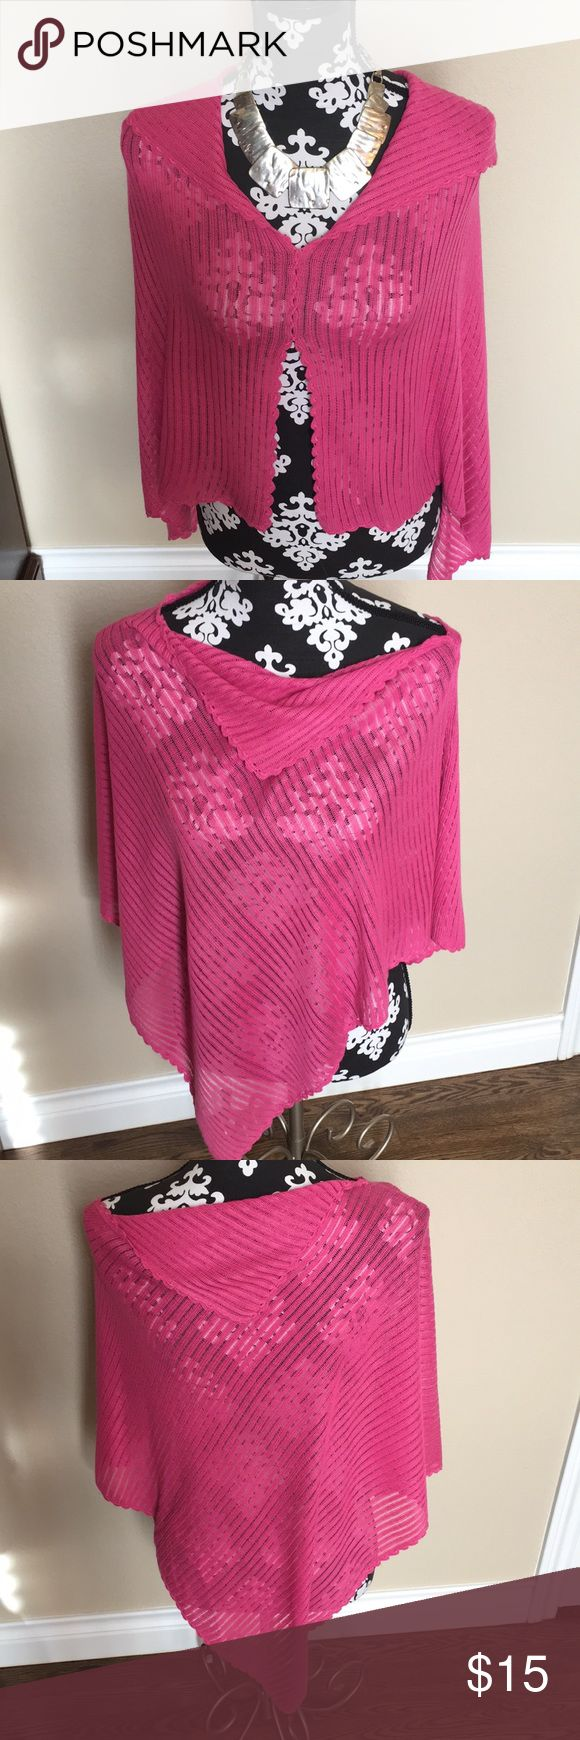 Bubble gum pink cotton poncho Pretty and lightweight cotton poncho Scalloped detailing along the edges  Can be worn many ways  Great to have in your purse for those chilly restaurants and movie theaters.  NWOT 100%cotton  Gentle cycle lay flat to dry  Made in Peru 🇵🇪 Jackets & Coats Capes